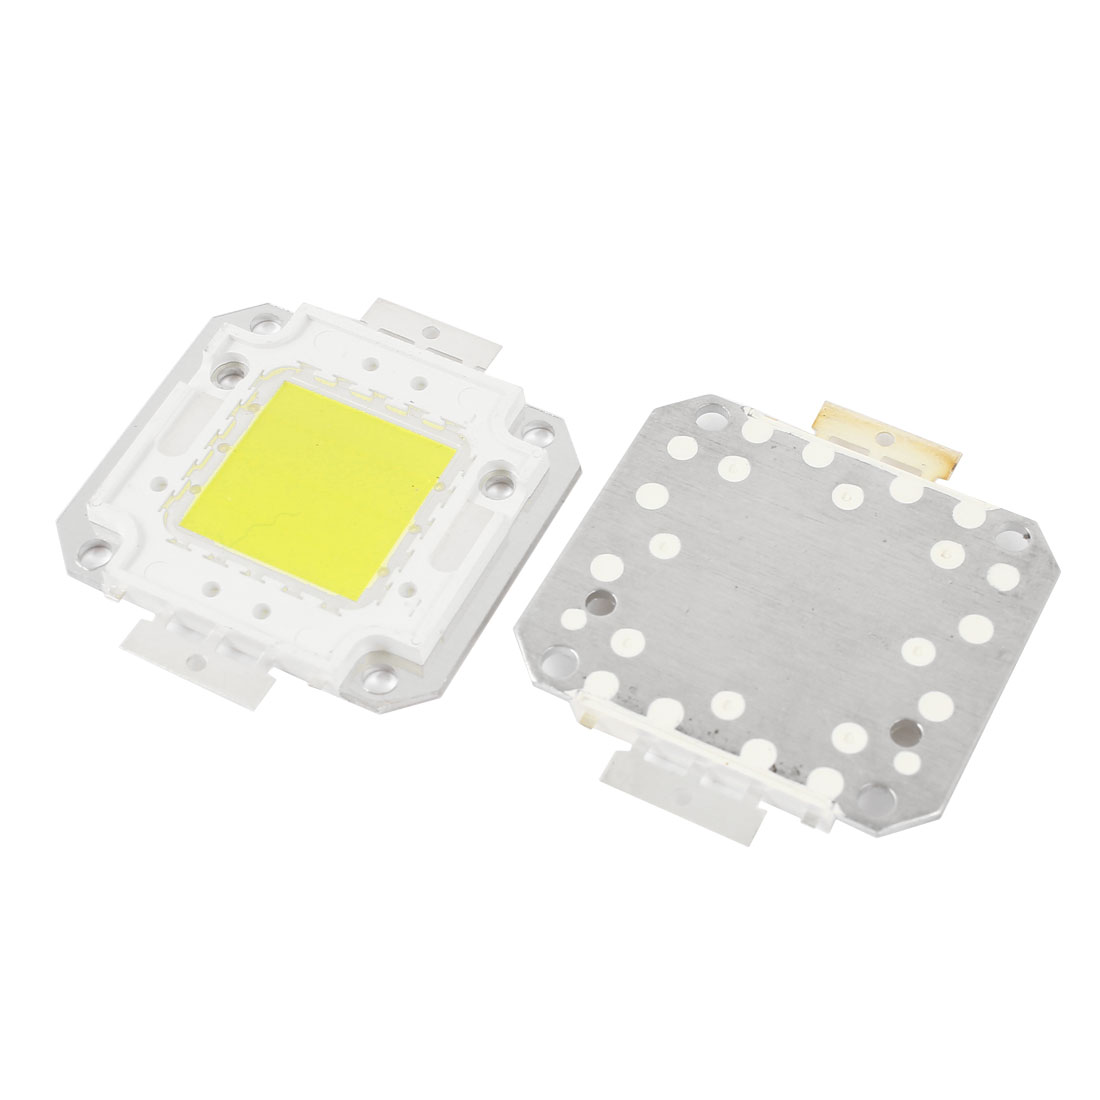 2pcs 30W Yellow LED Emitter Metal Plate White Lamp Light 16-18V 1.8A